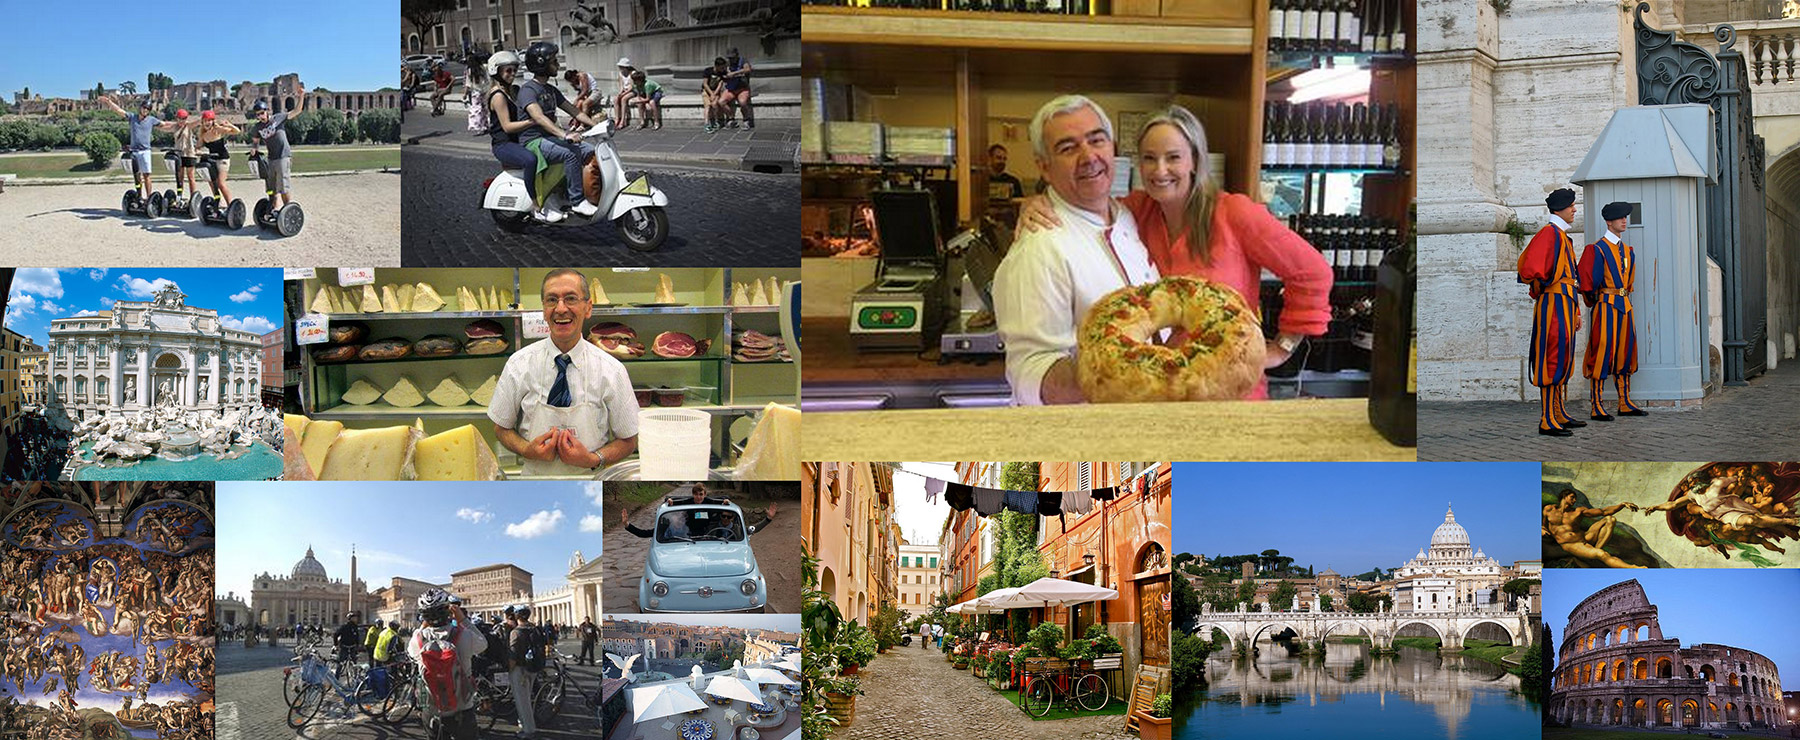 agence incentive Rome